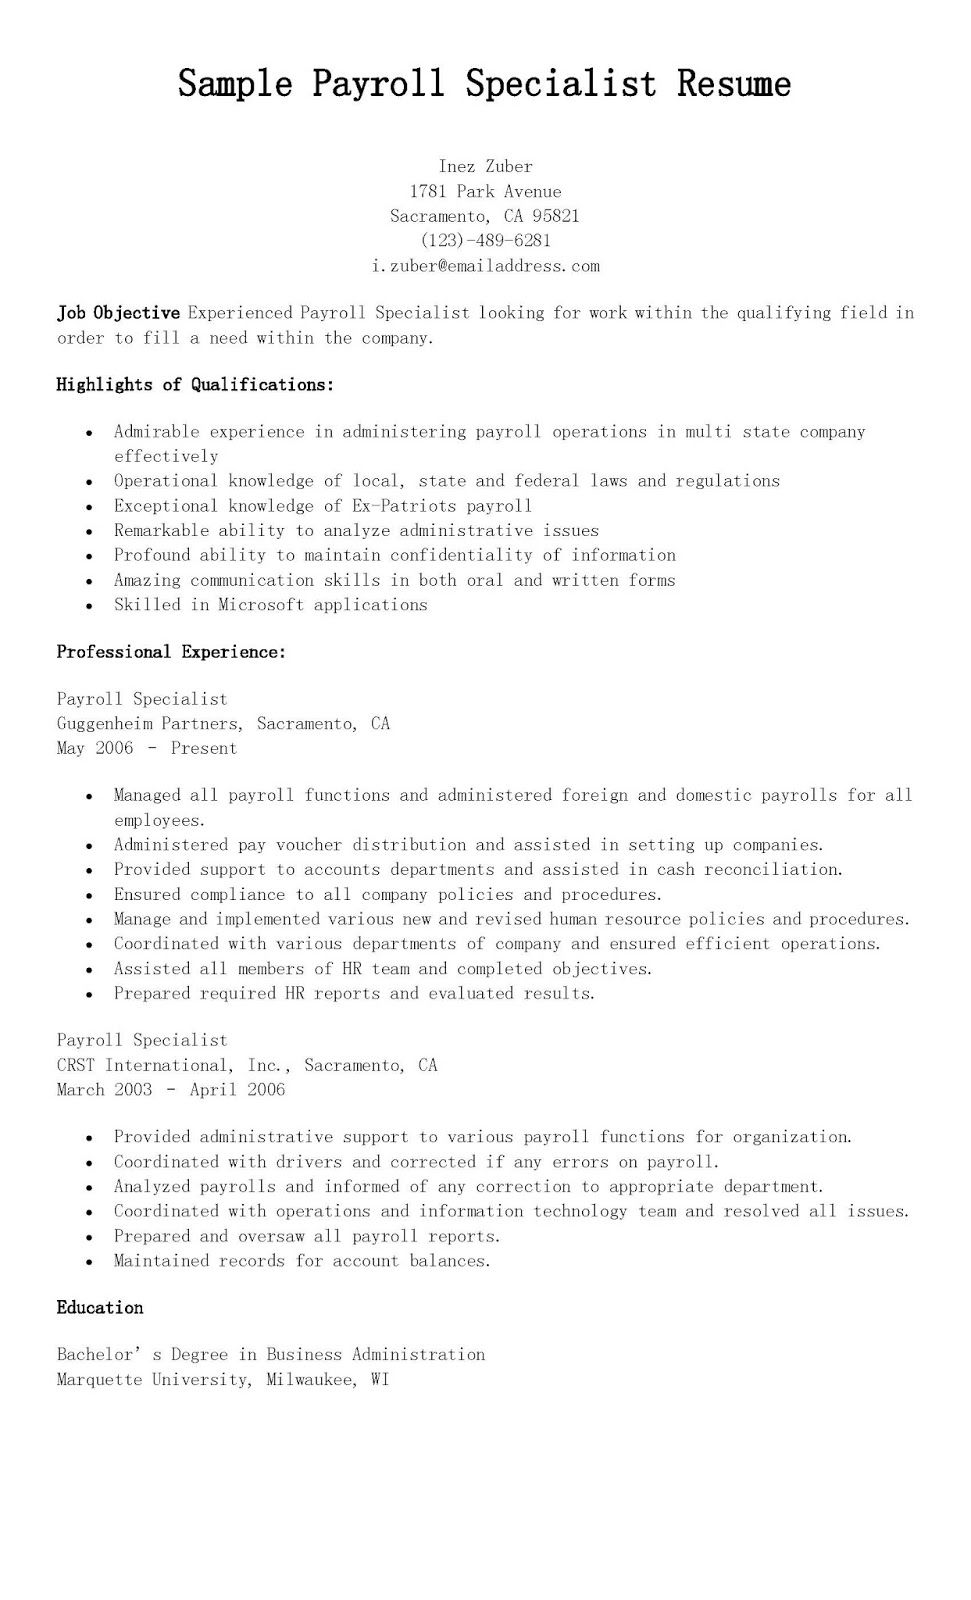 Payroll Specialist Job Description